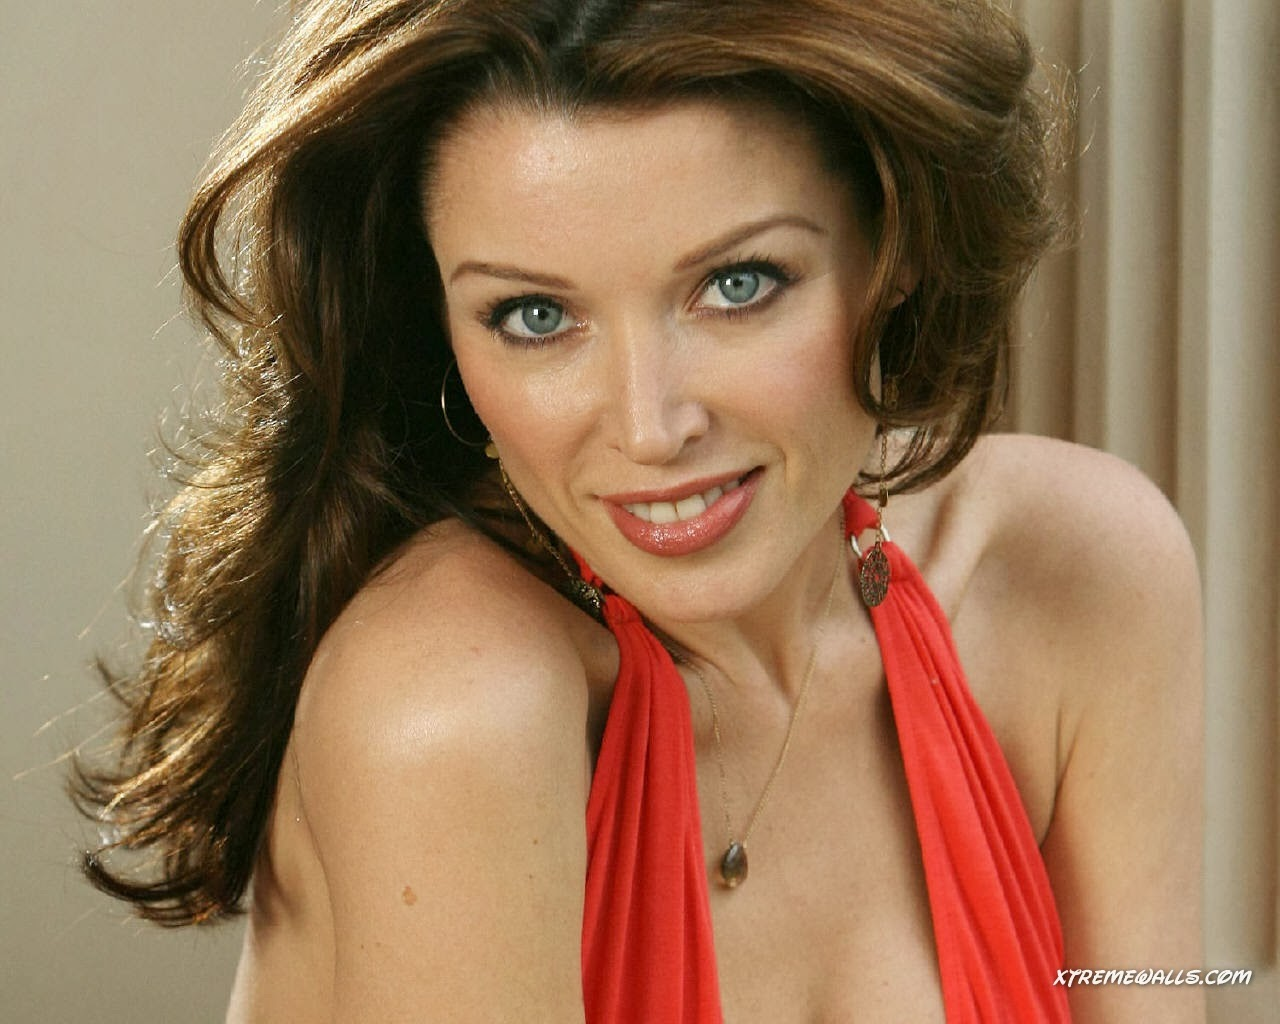 Not agree Dannii minogue hot